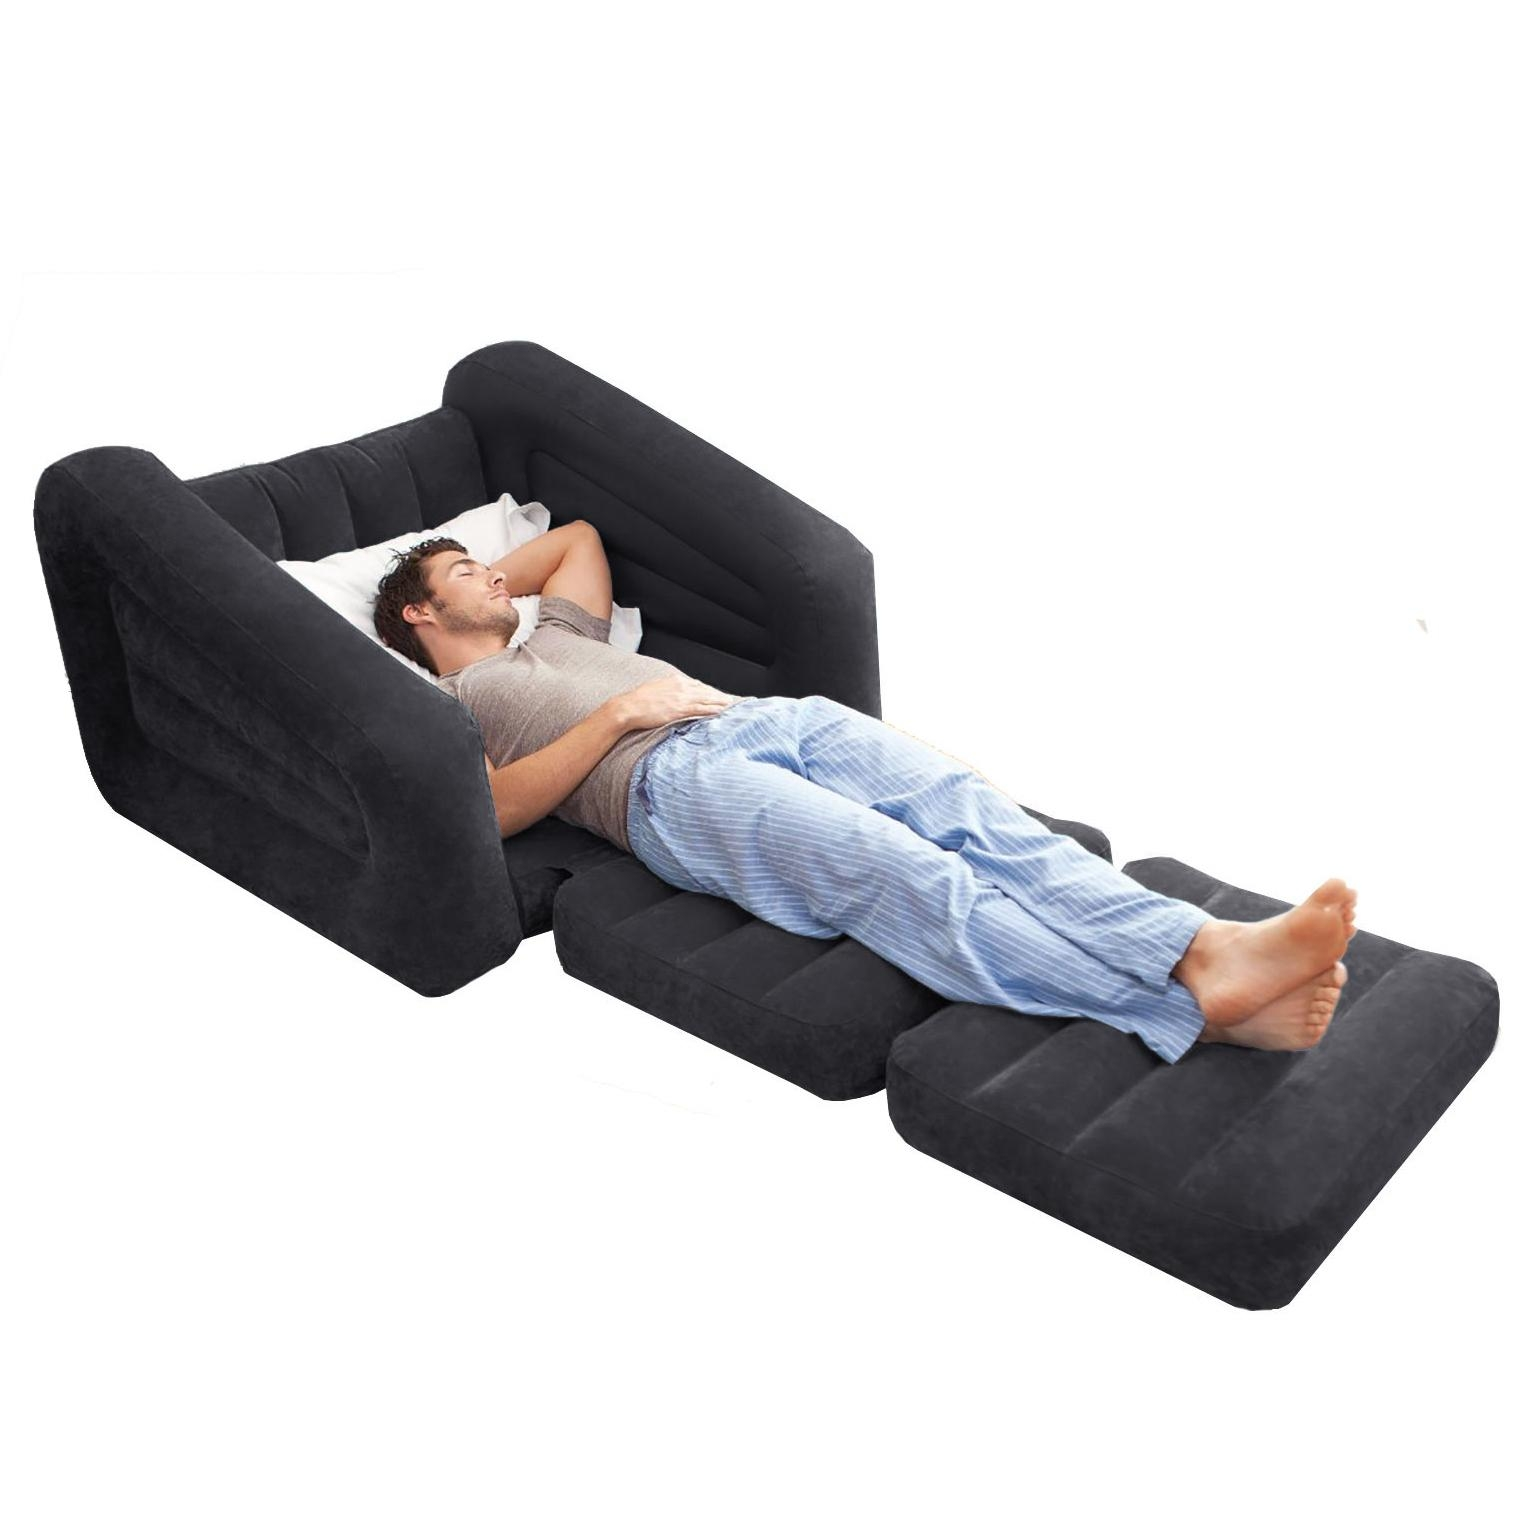 Intex Sofa Air Bed Intex Pull Out Sofa Air Beds And Pillows Pertaining To Intex Pull Out Chairs (View 15 of 20)